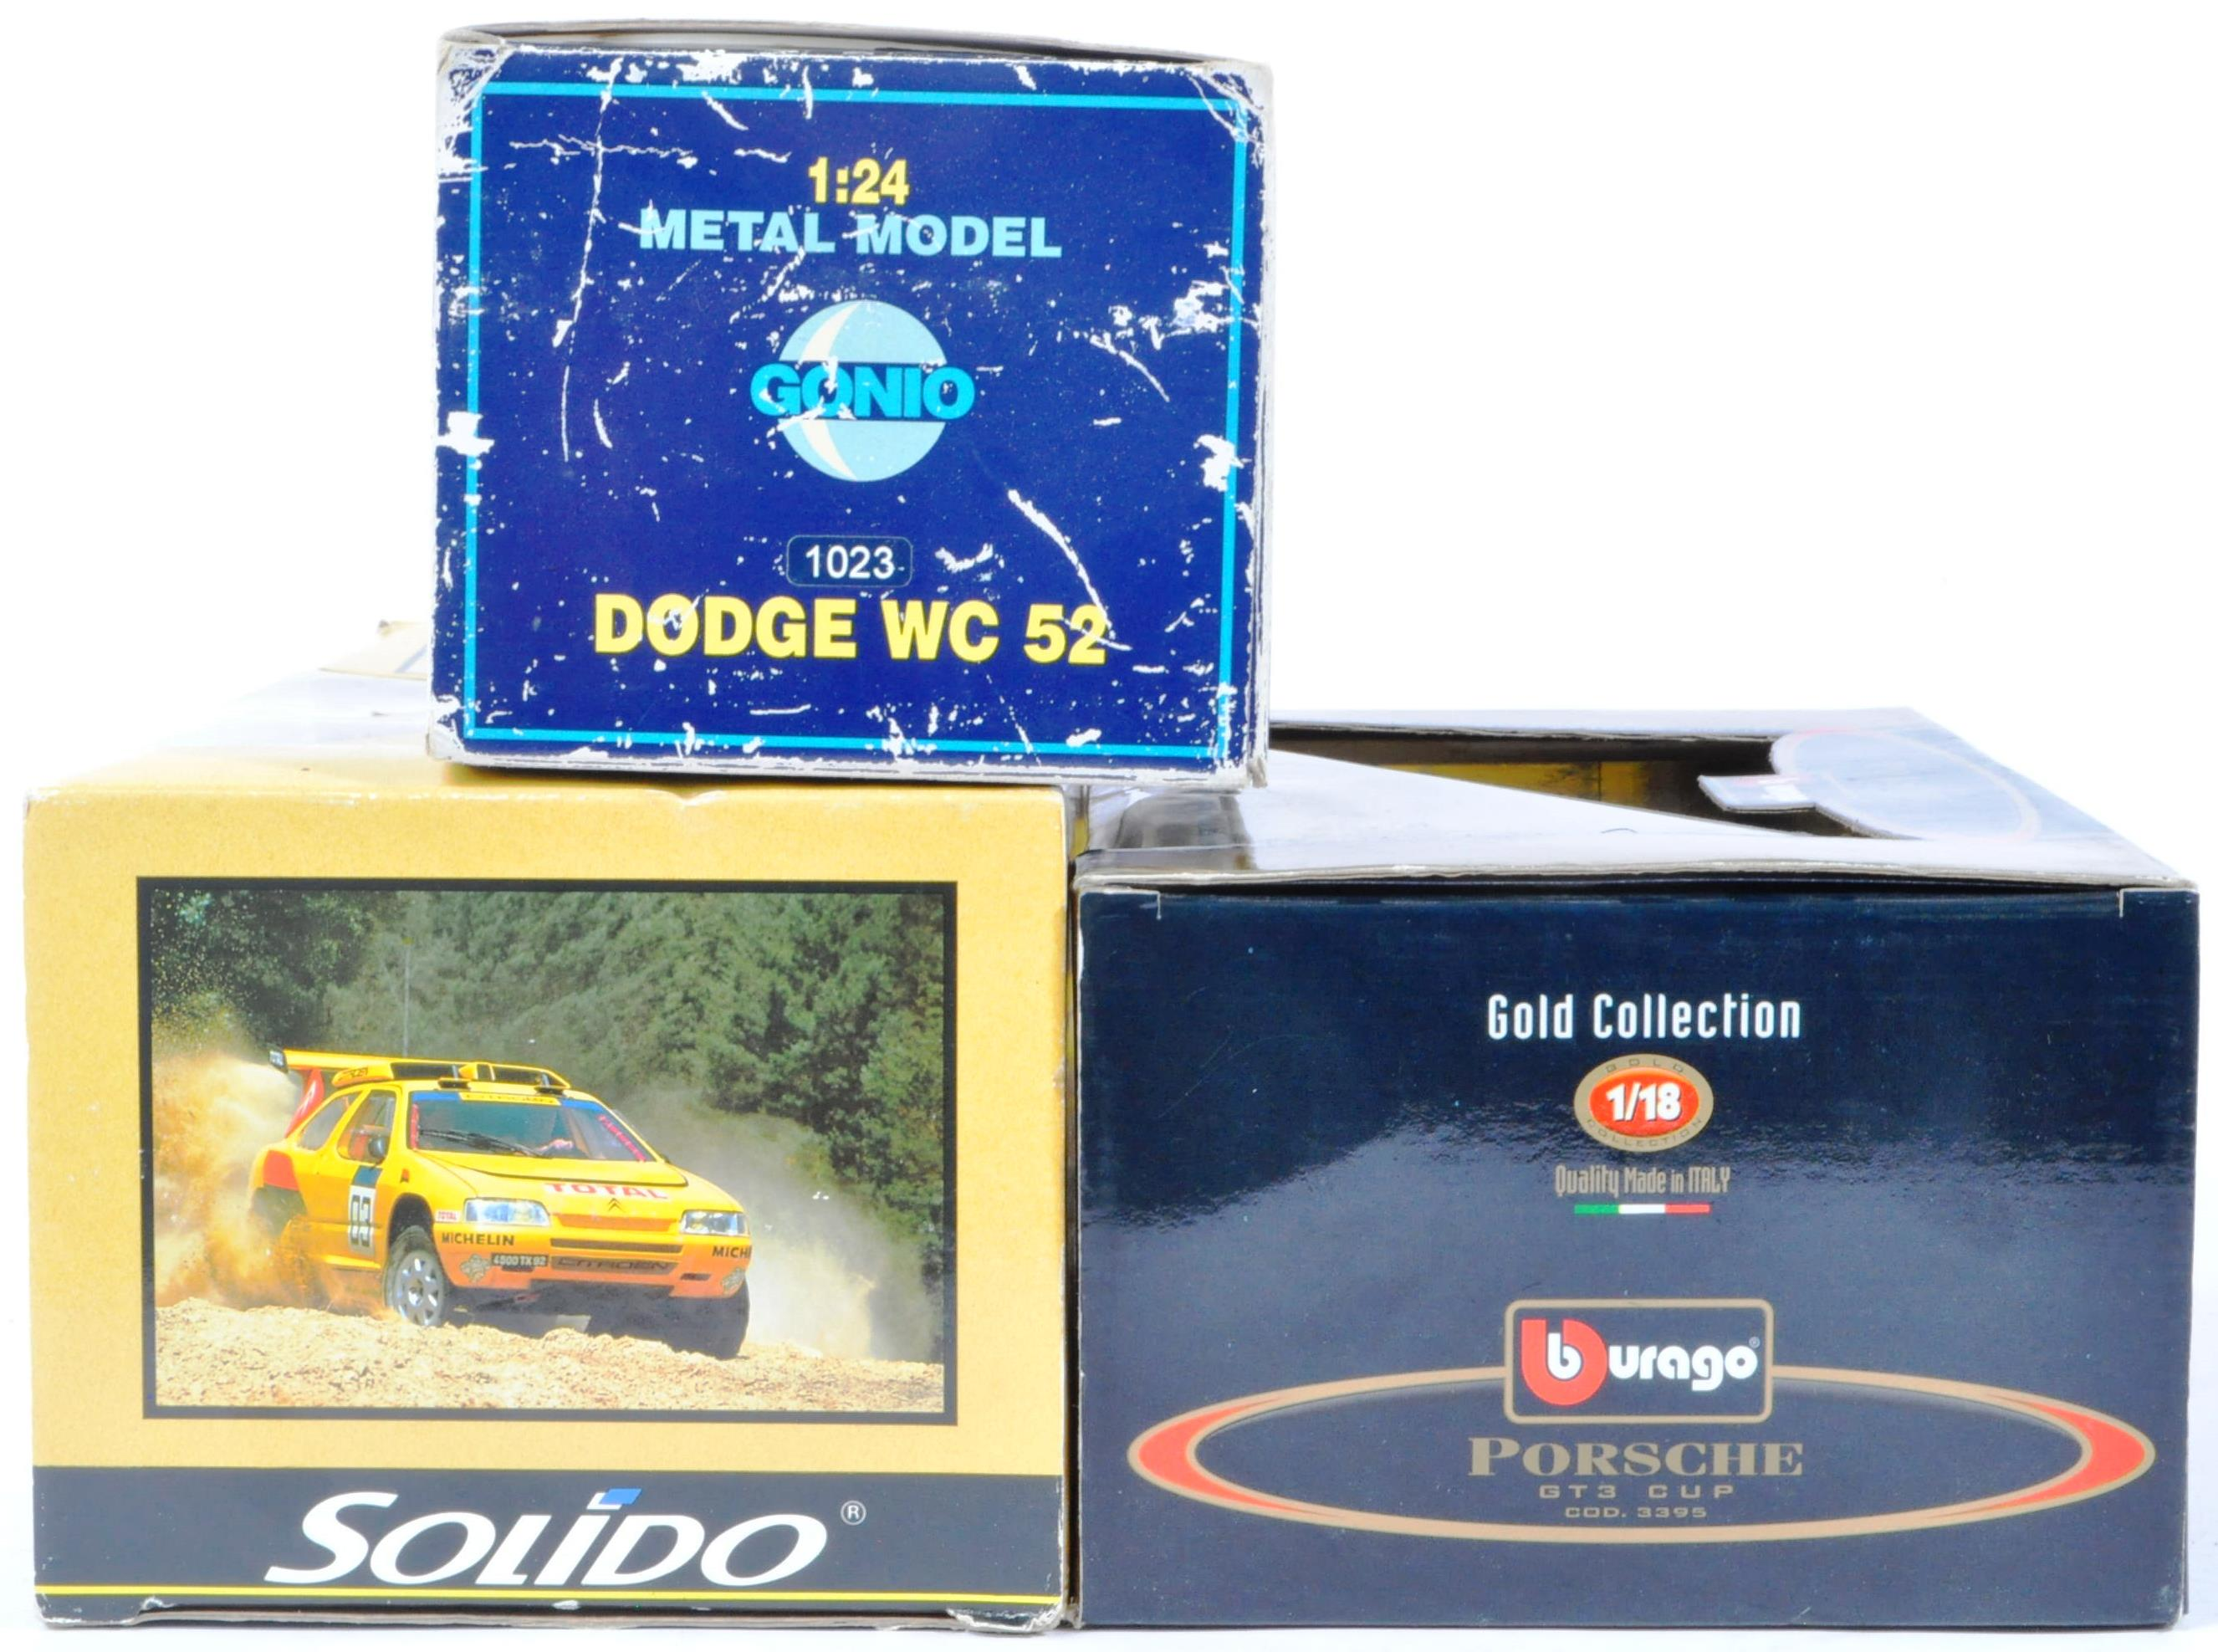 DIECAST - LARGE SCALE BOXED DIECAST MODELS 1/18 AND 1/24 - Image 3 of 5